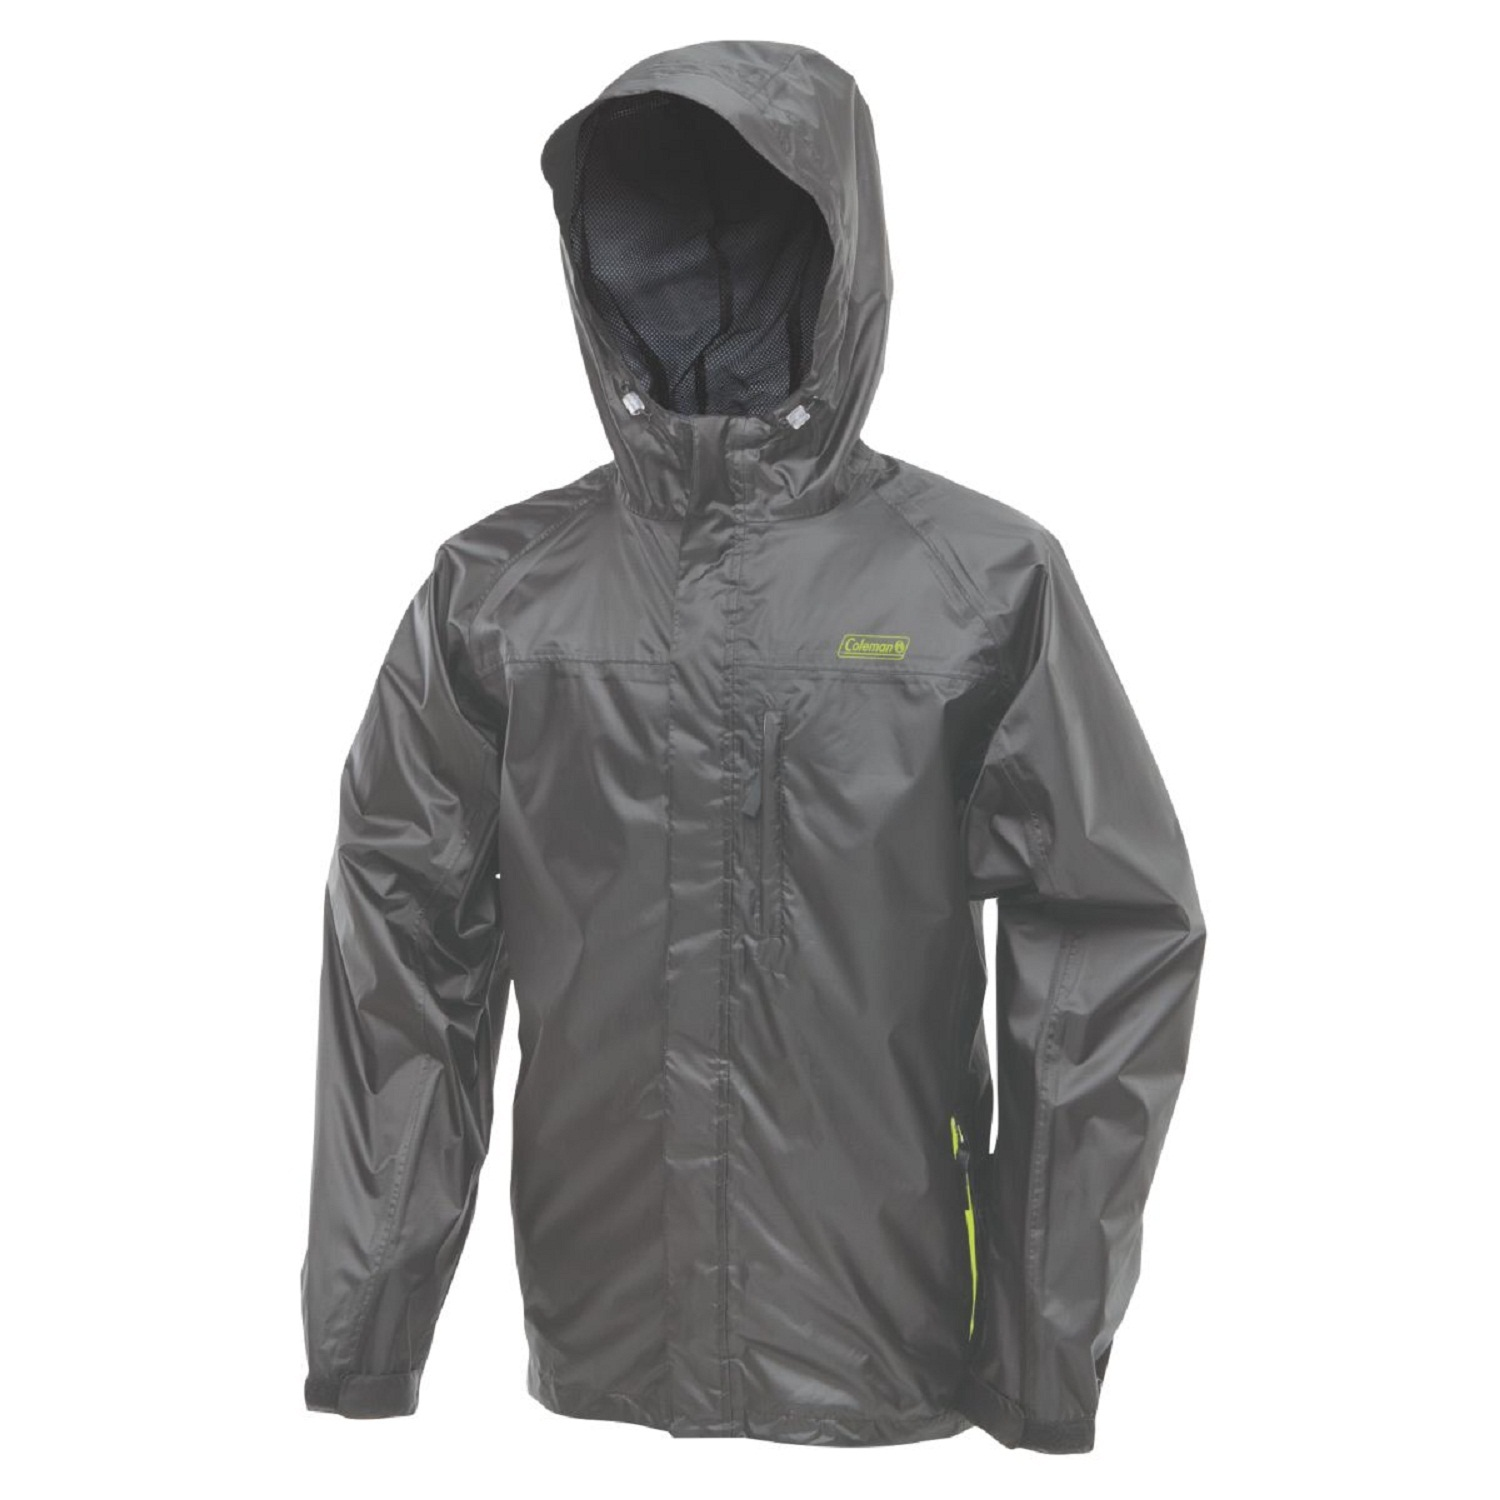 Coleman Rainwear Danum Jacket Grey/Green Large